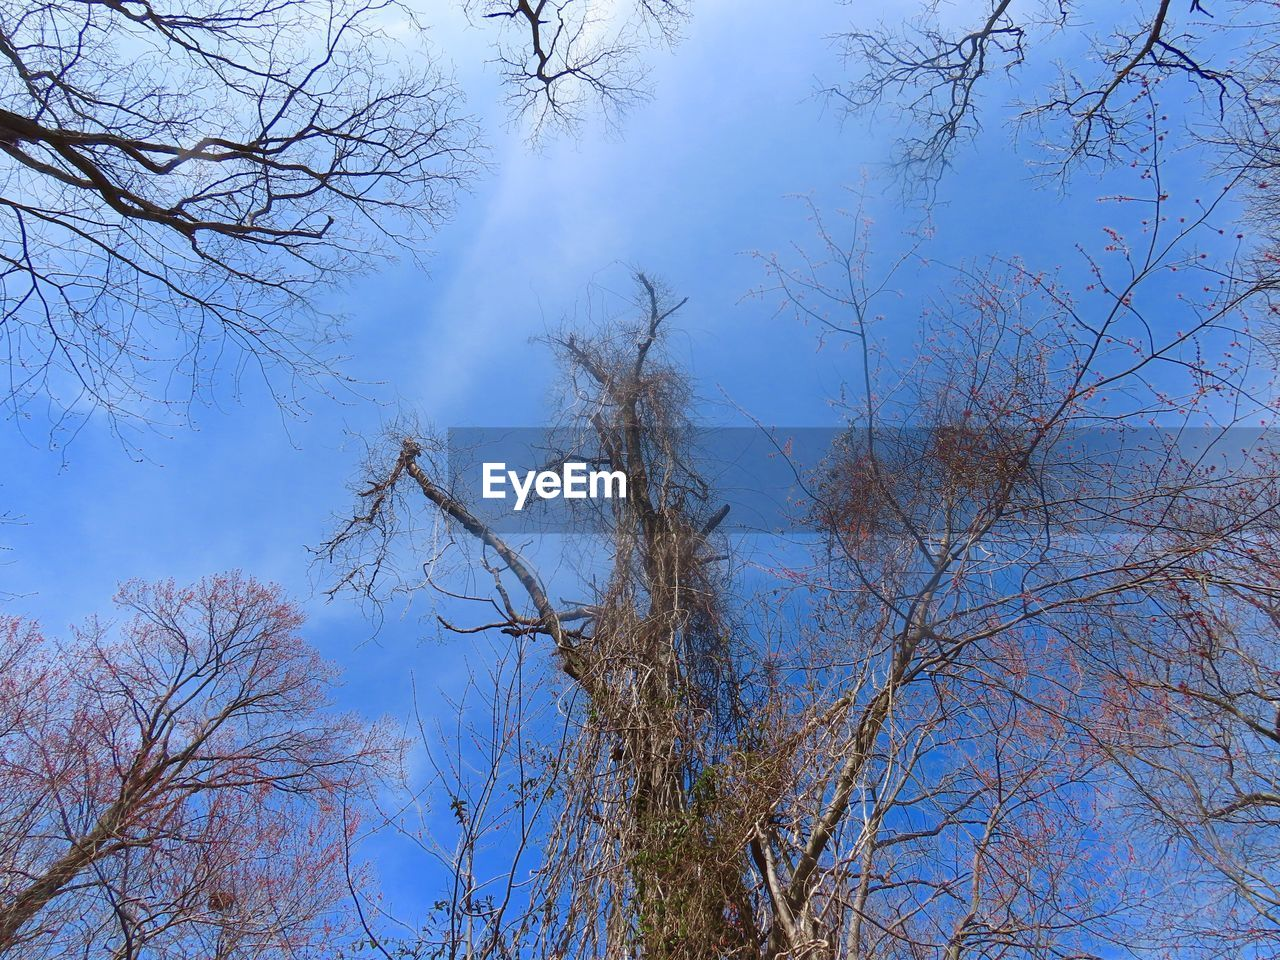 tree, plant, sky, branch, bare tree, low angle view, tranquility, no people, nature, day, beauty in nature, blue, tranquil scene, outdoors, scenics - nature, growth, autumn, cloud - sky, non-urban scene, dead plant, tree canopy